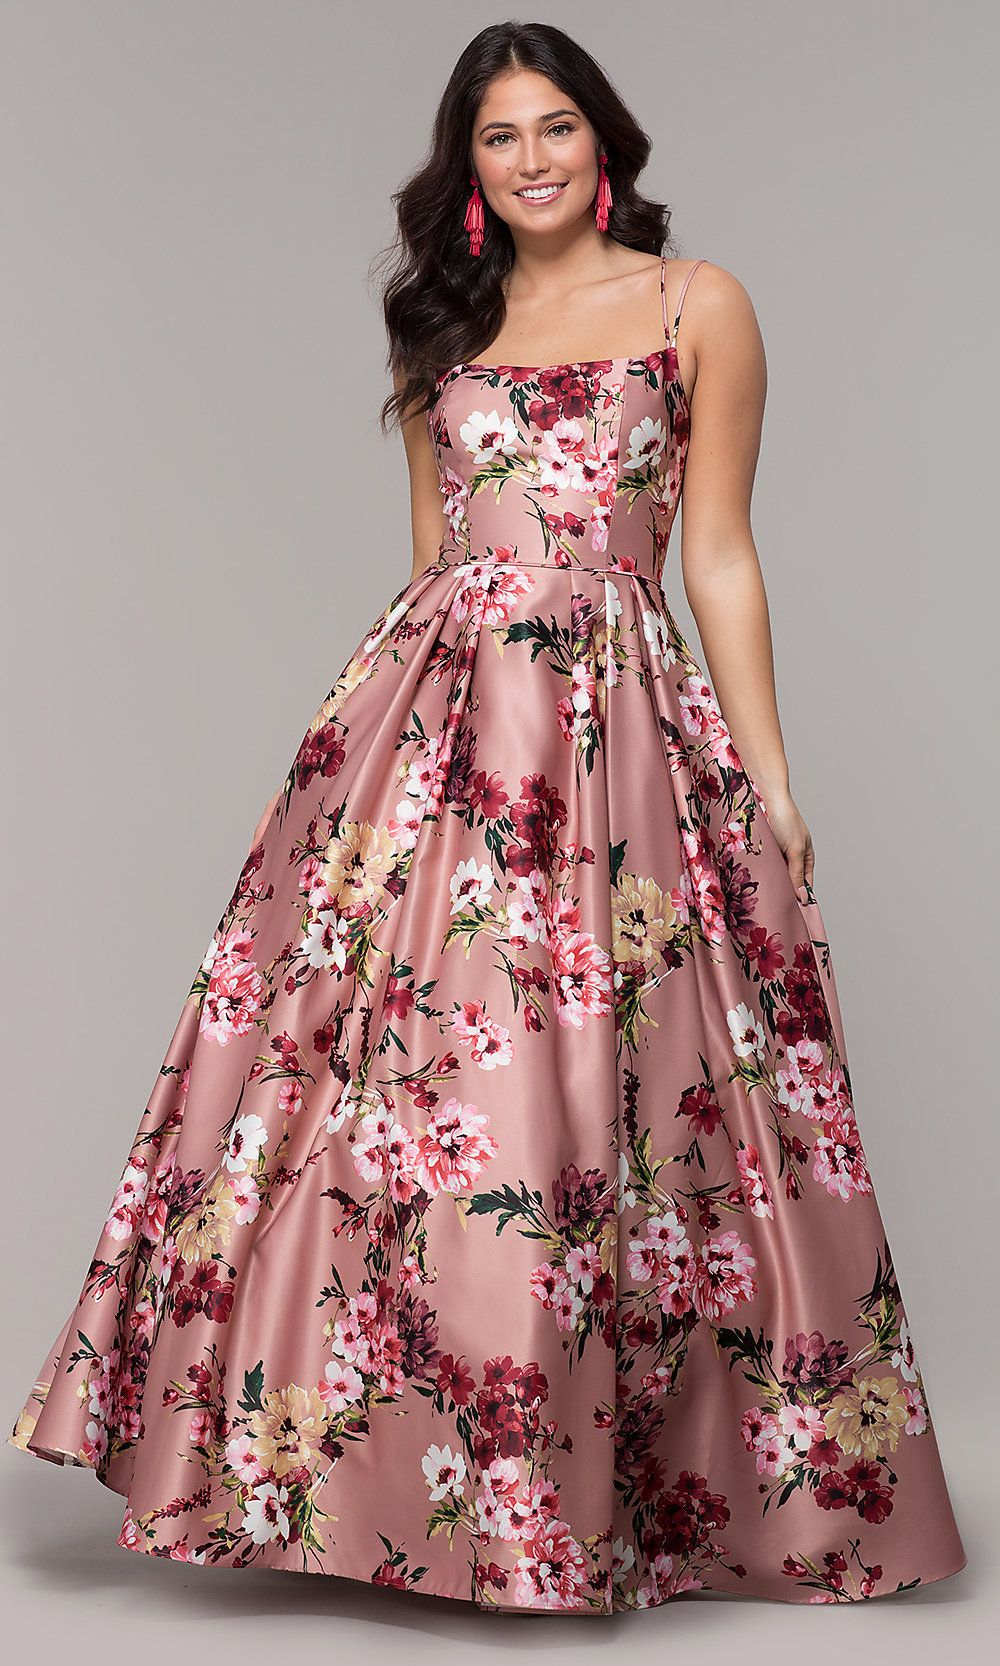 Floral Print Long Pink Square Neck Prom Dress Floral Prom Dresses Floral Dress Formal Floral Print Prom Dress